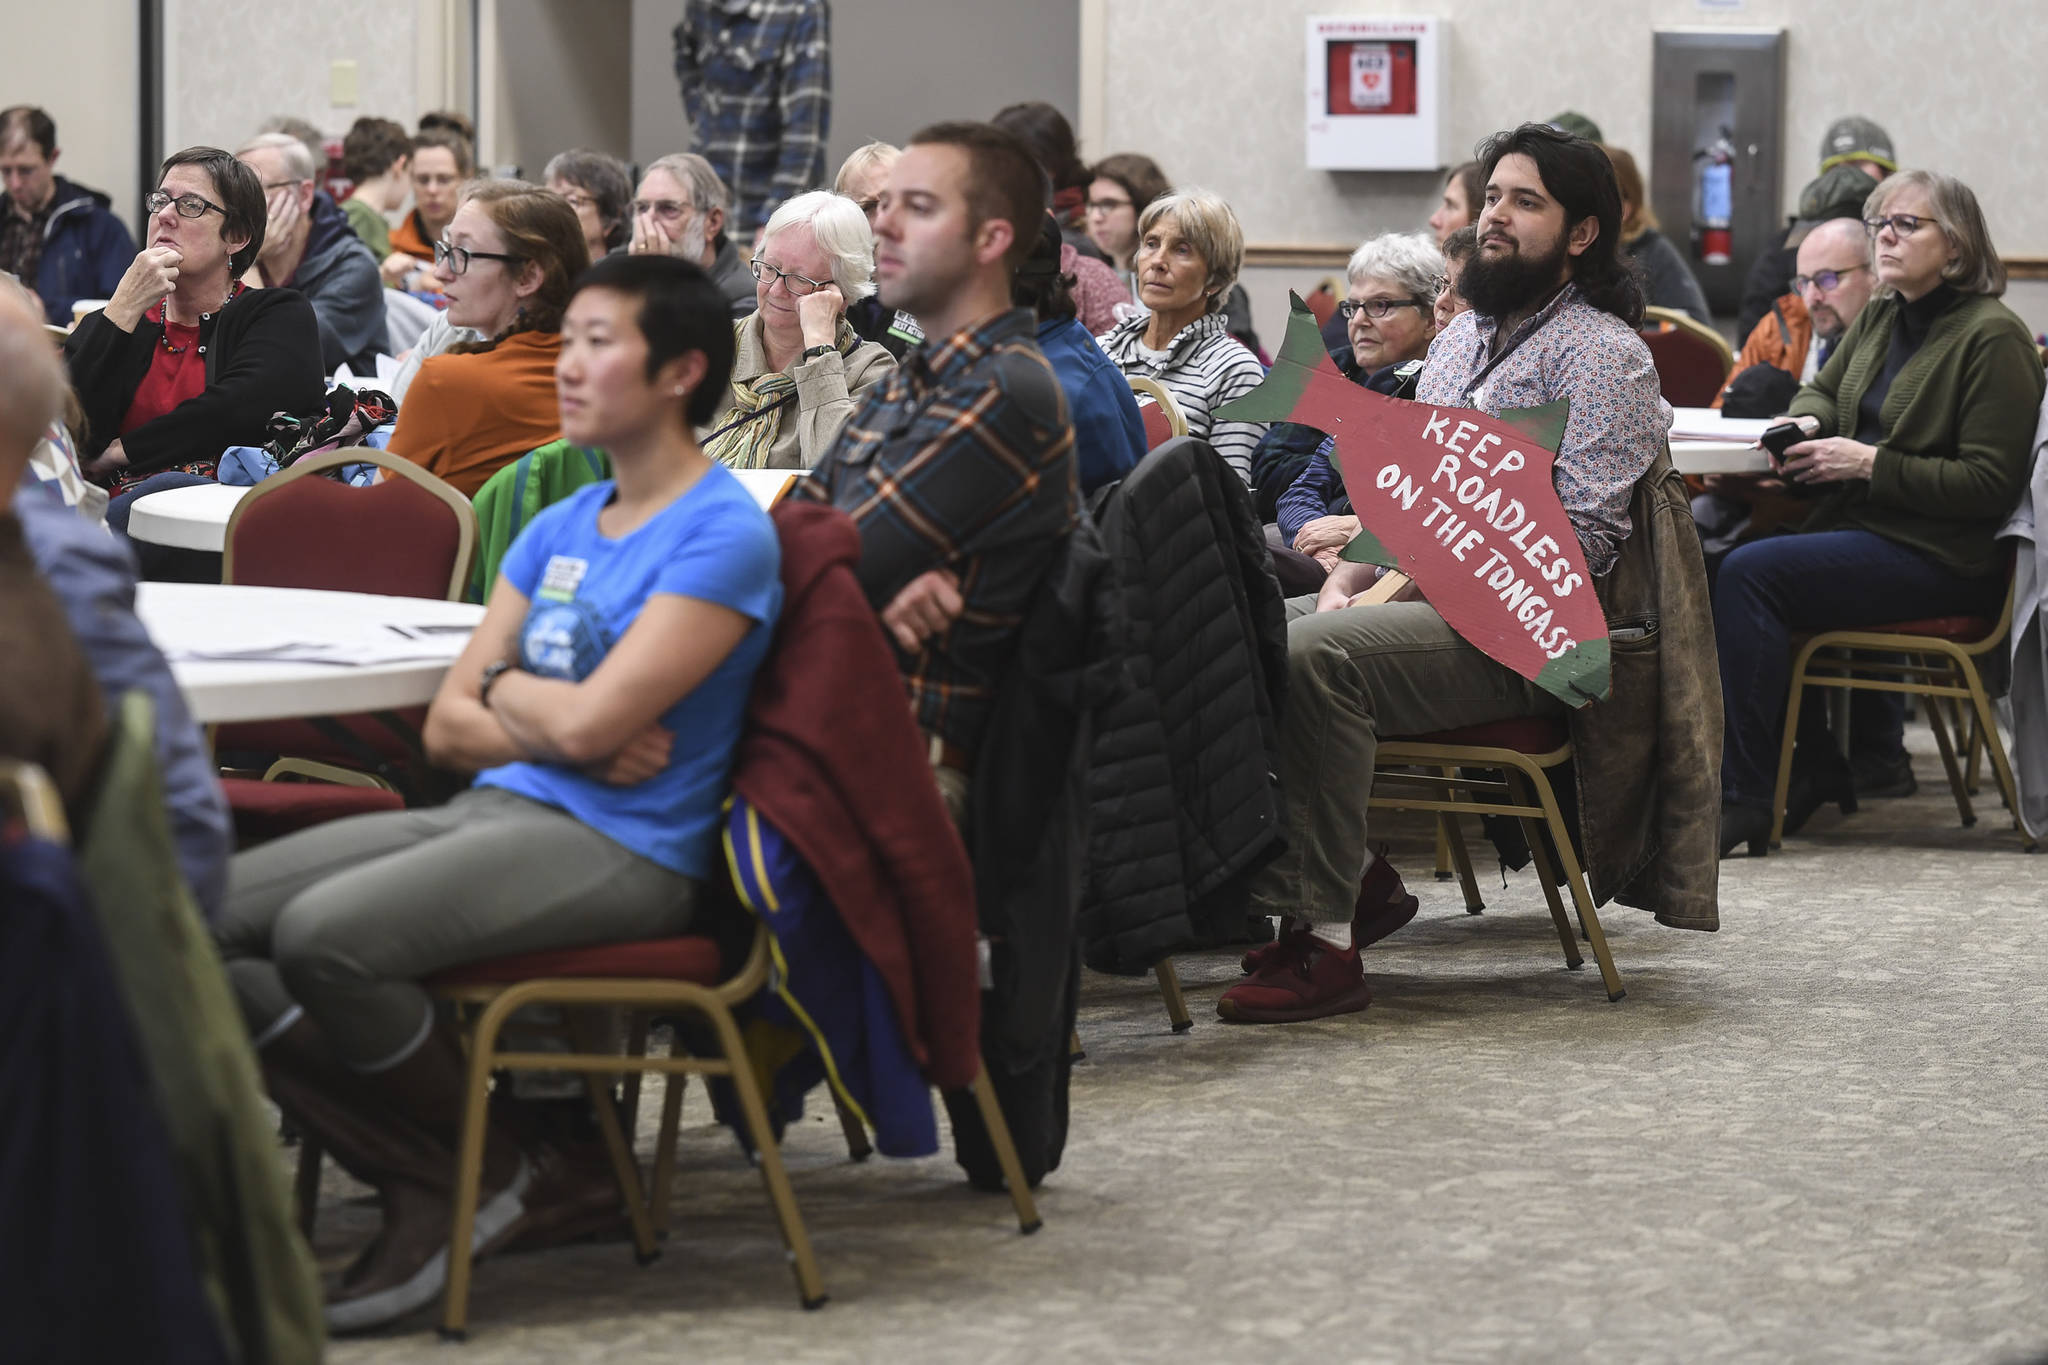 Juneau residents listen to a U.S. Department of Agriculture Forest Service meeting on the Rulemaking for Alaska Roadless Areas Draft Environmental Impact Statement at Elizabeth Peratrovich Hall on Monday, Nov. 4, 2019. (Michael Penn | Juneau Empire)